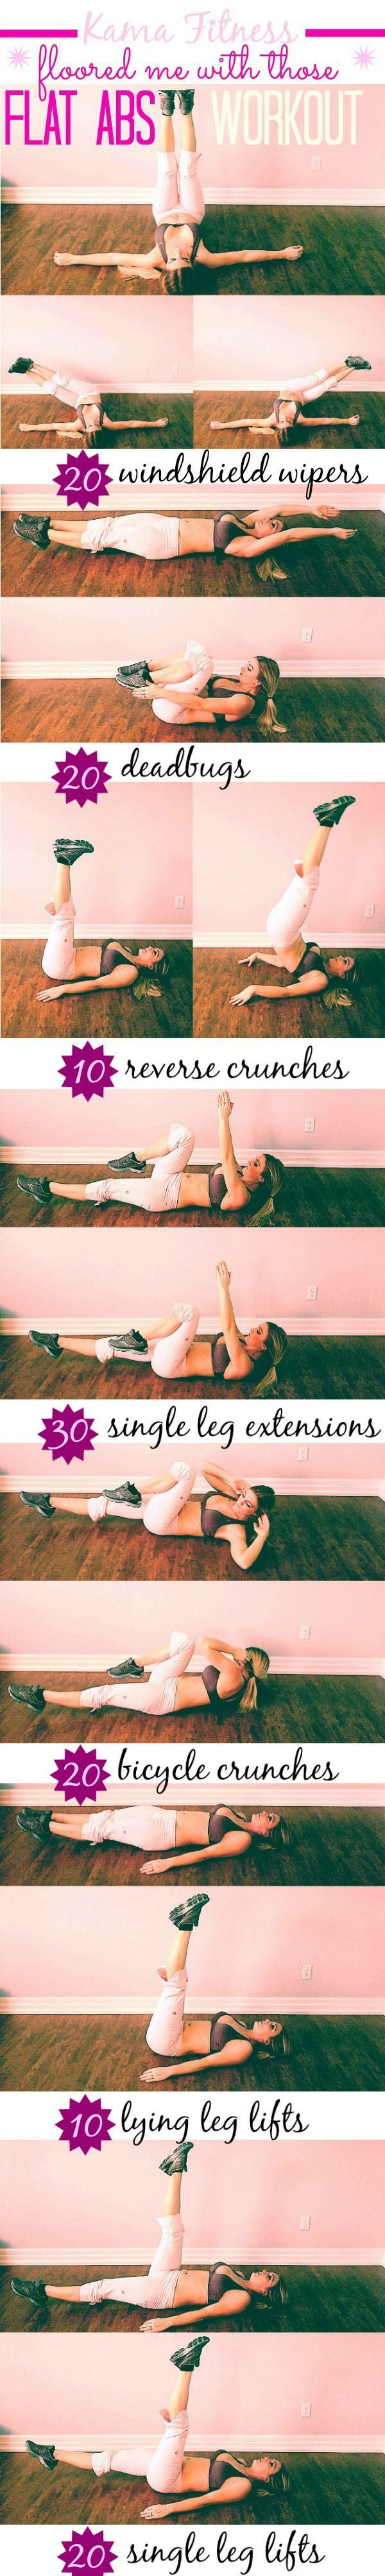 7 floor exercises for tight abdominals